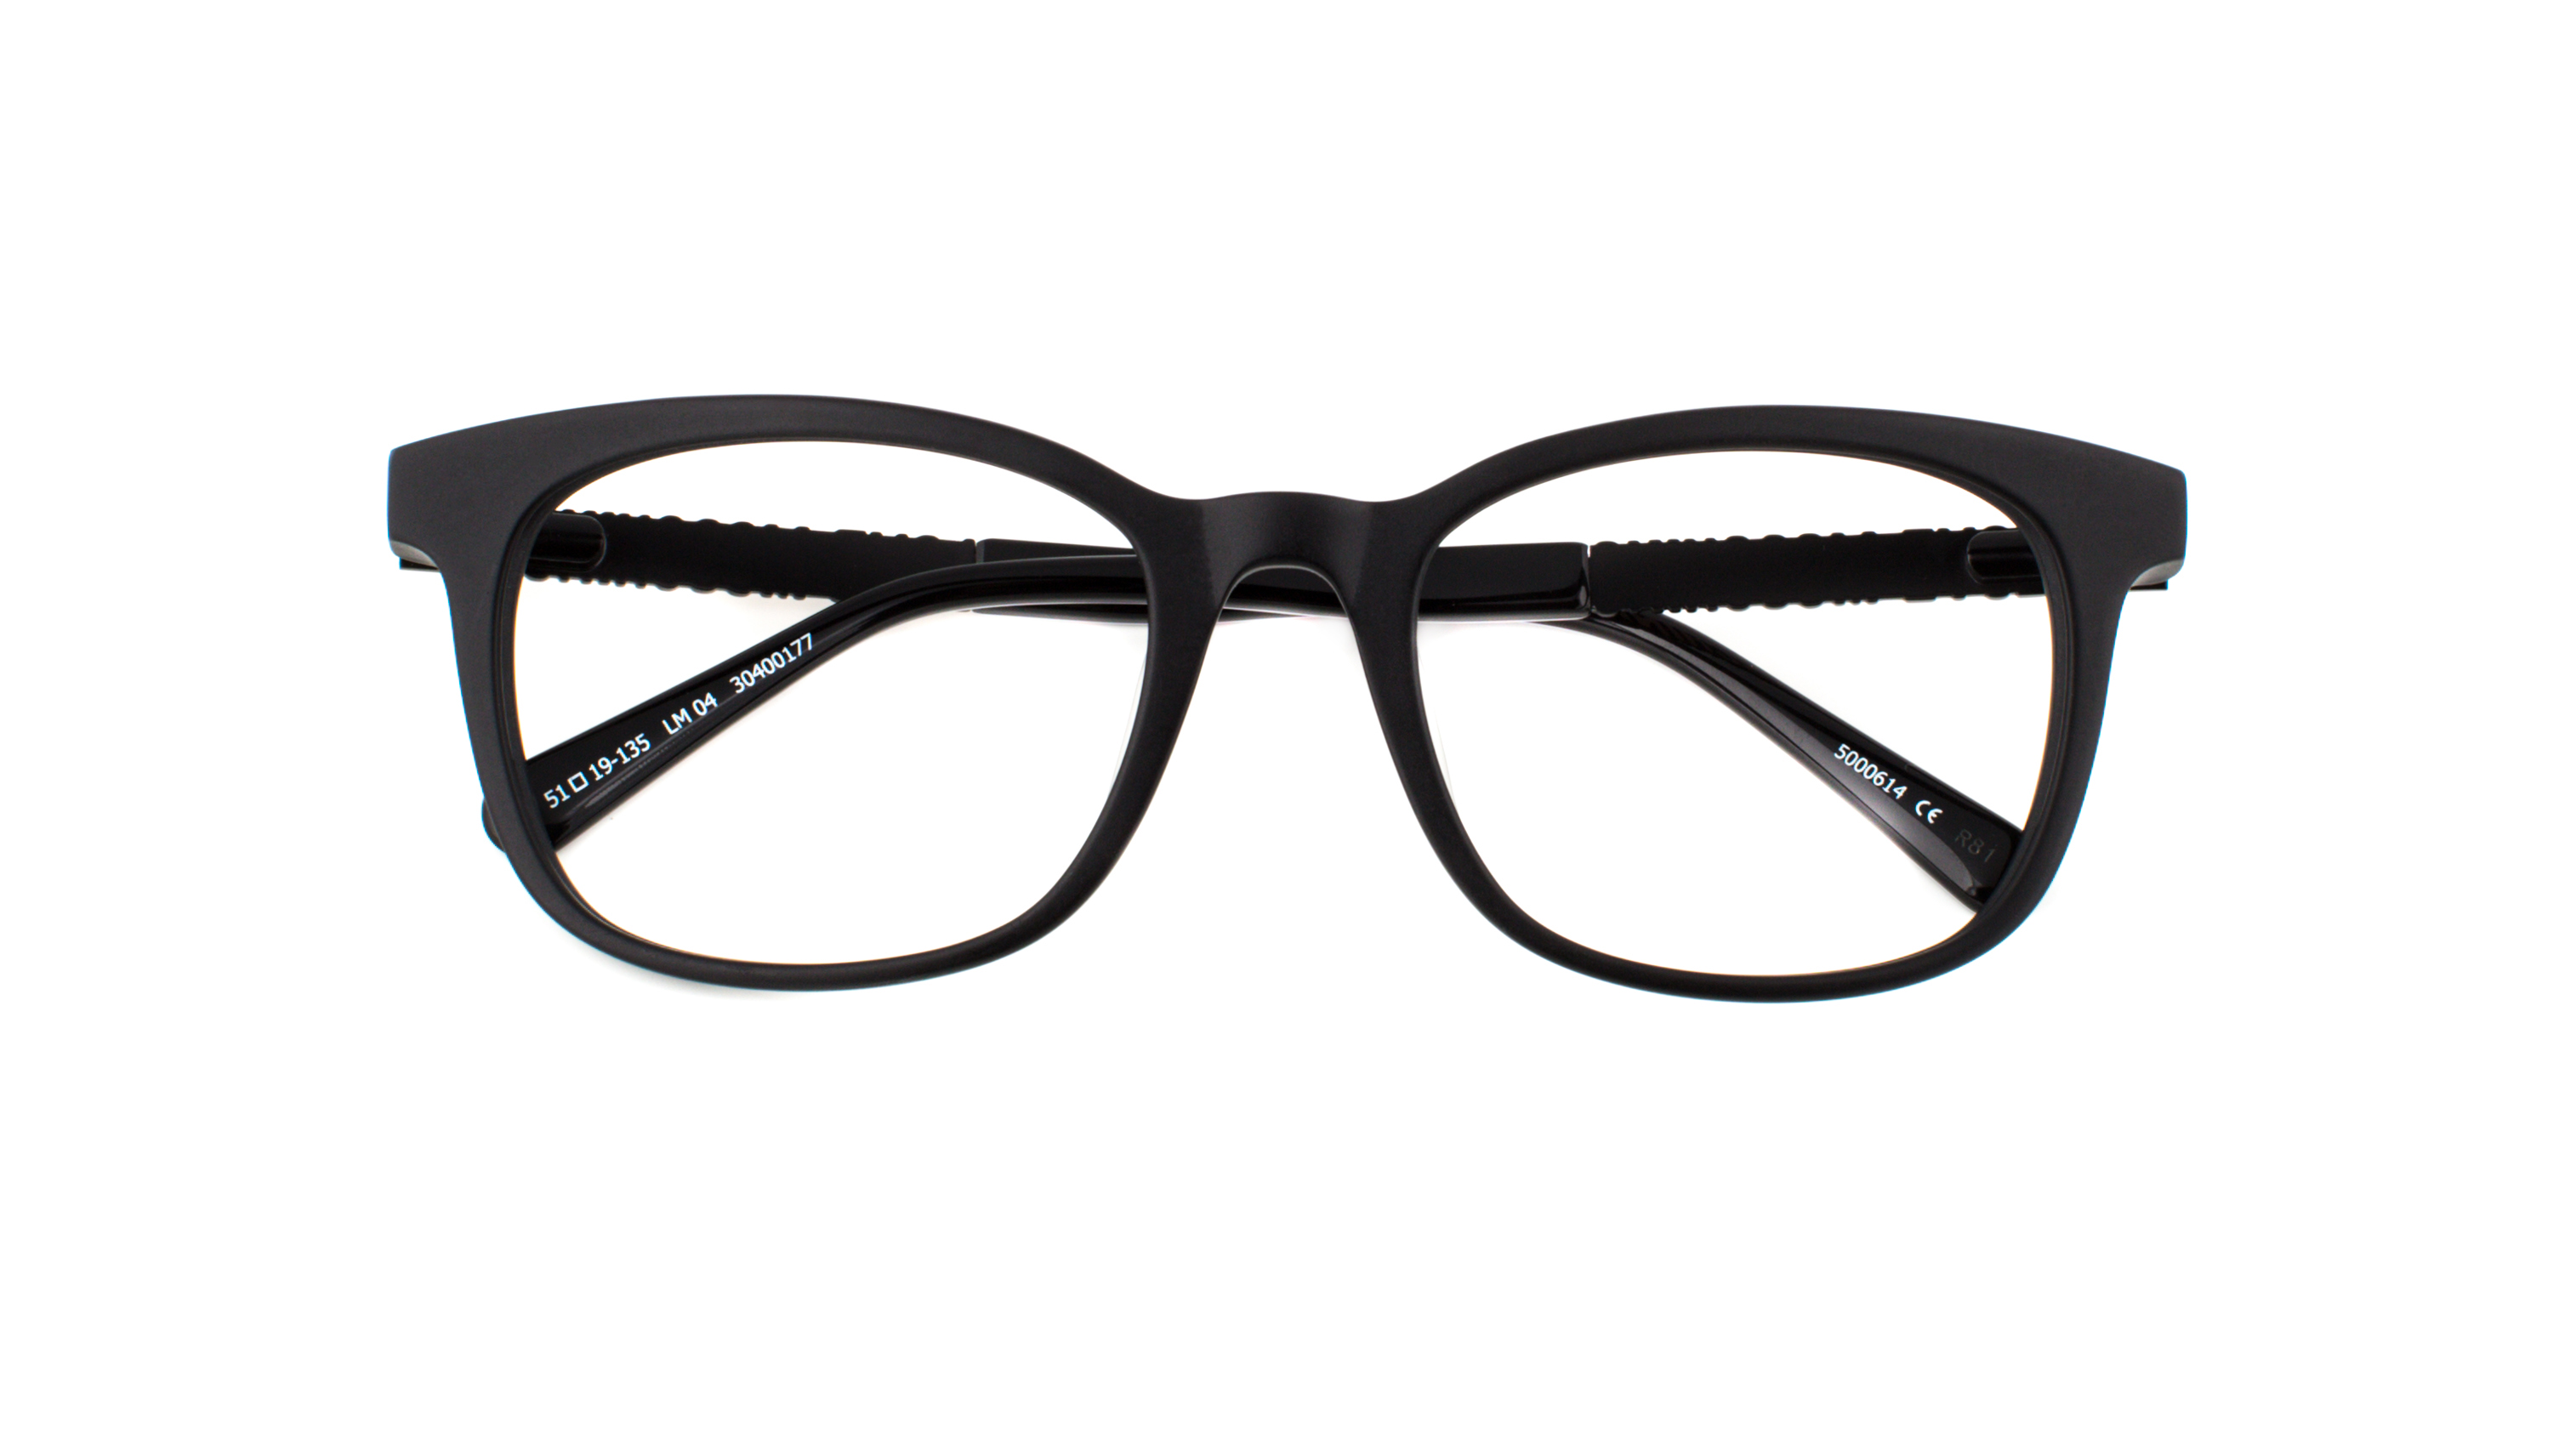 Black Frame Glasses Specsavers : Fall for Specsavers new addition: Love Moschino So Many ...